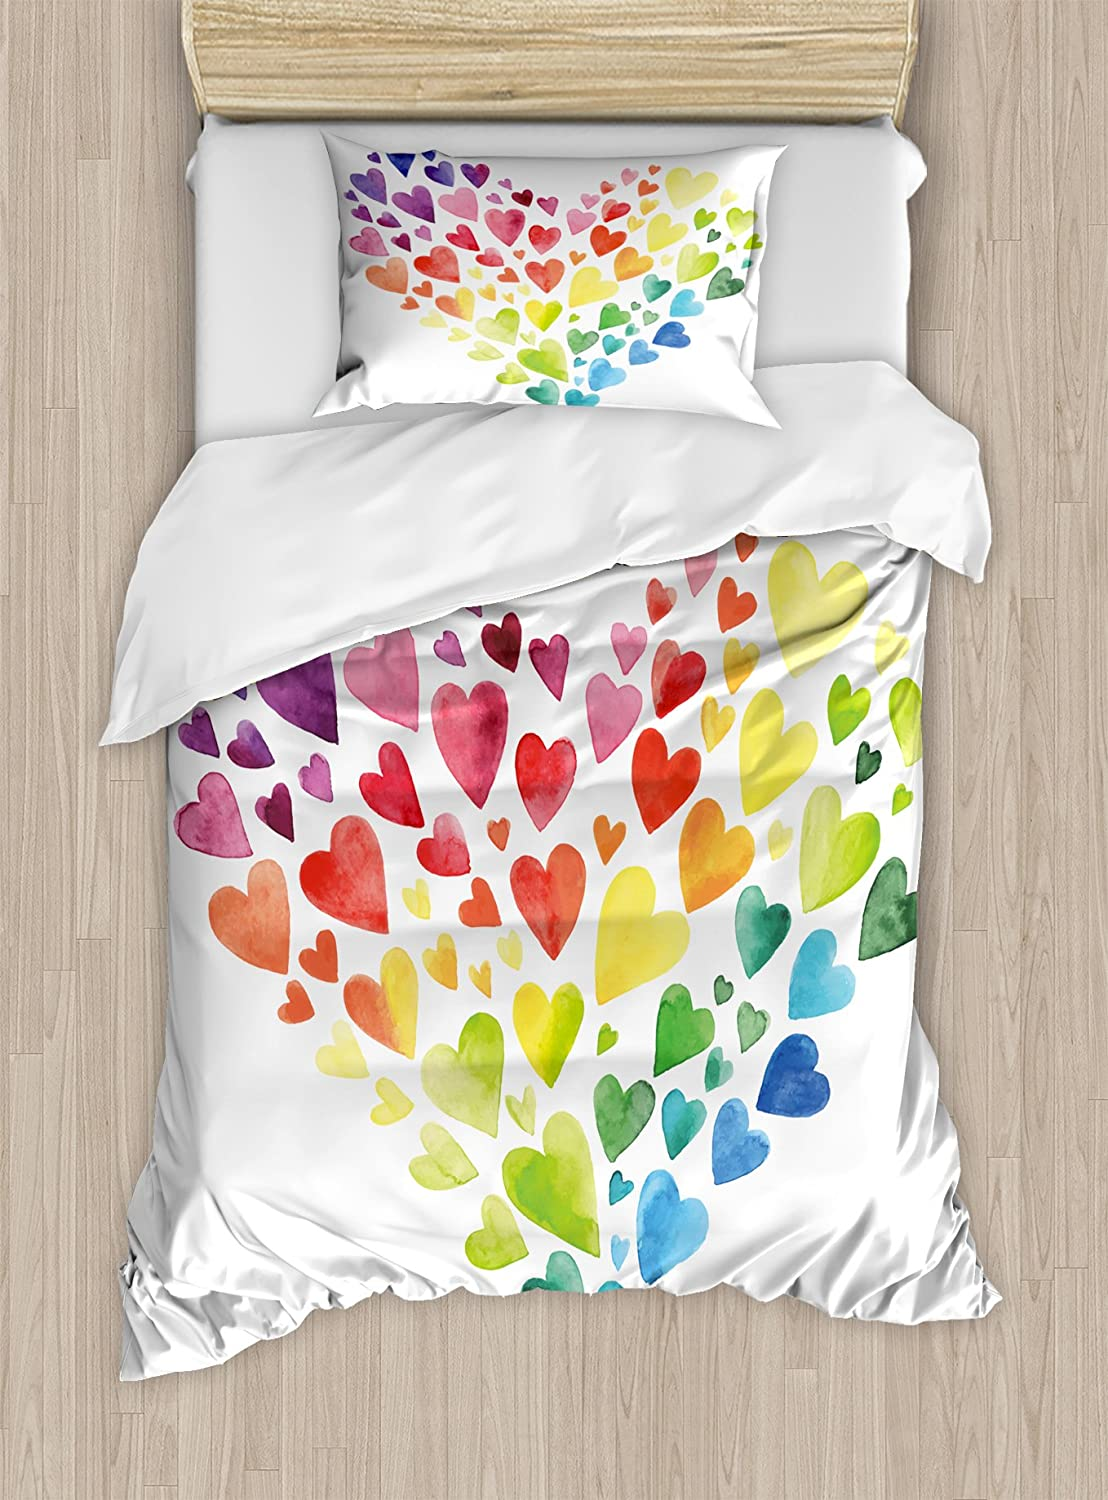 Ambesonne Rainbow Duvet Cover Set Twin Size, Multicolored Hearts forming a Giant Colorful Rainbow Inspired Heart Love Artwork, Decorative 2 Piece Bedding Set with 1 Pillow Sham, Multicolor